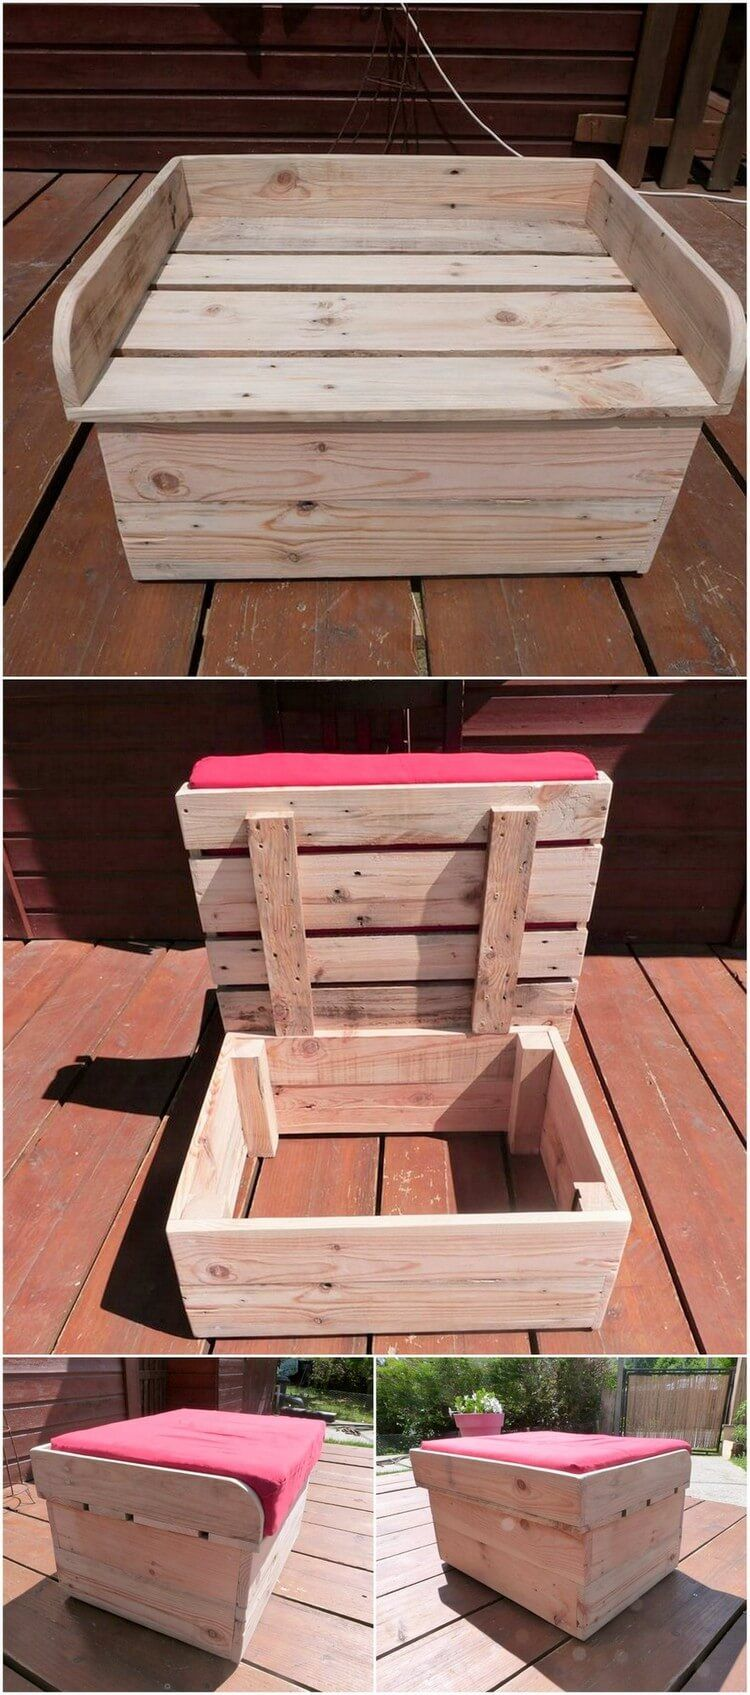 Cheapest Way To Ship Furniture Decoration cheapest diy ideas with old shipping wood pallets | pallet seating